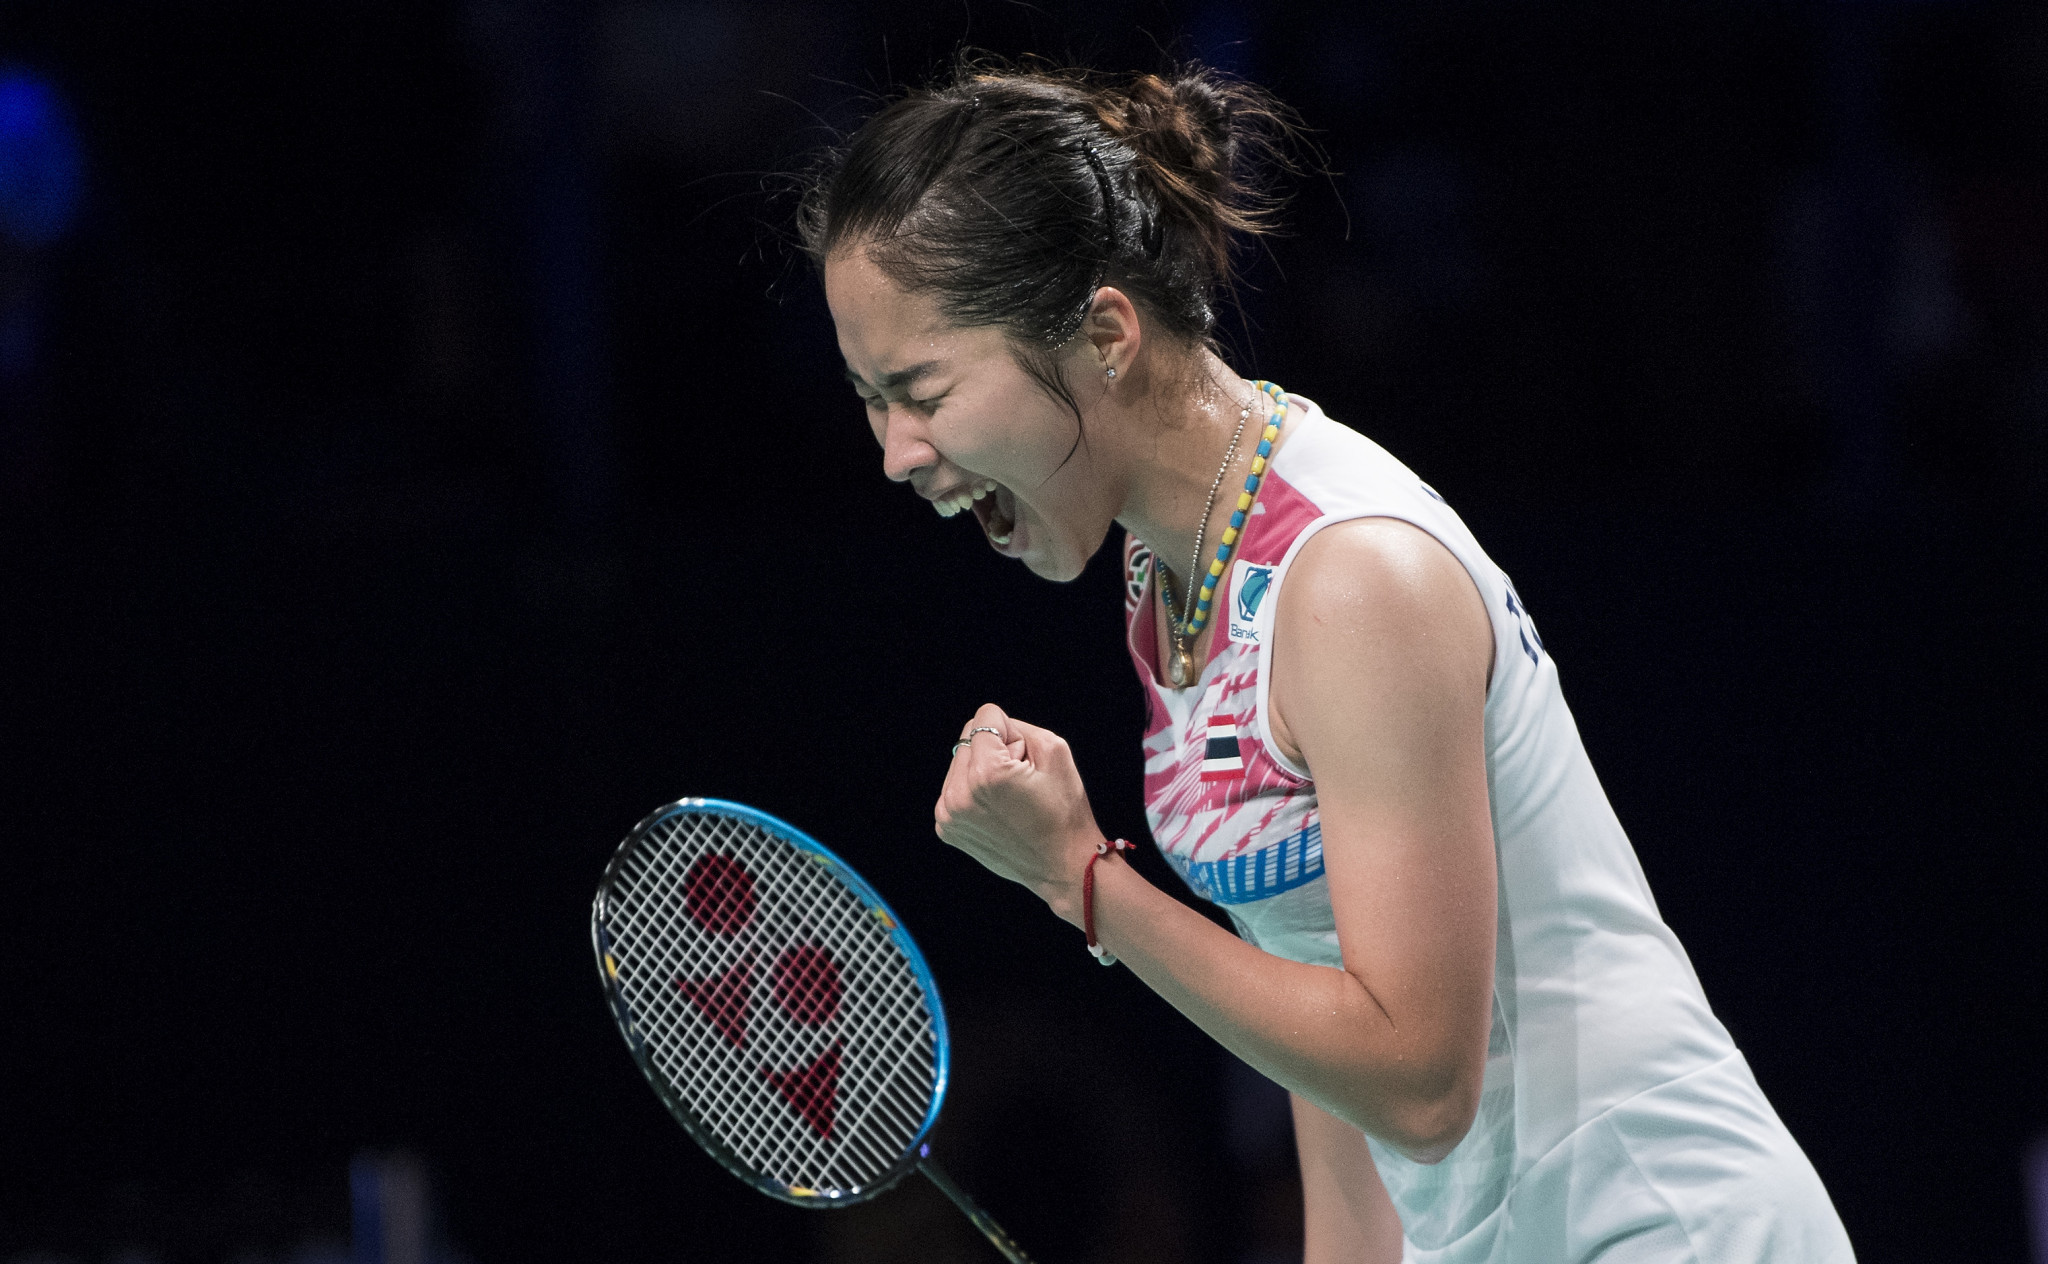 Ratchanok Intanon knocked out the top seed in the women's tournament ©Getty Images